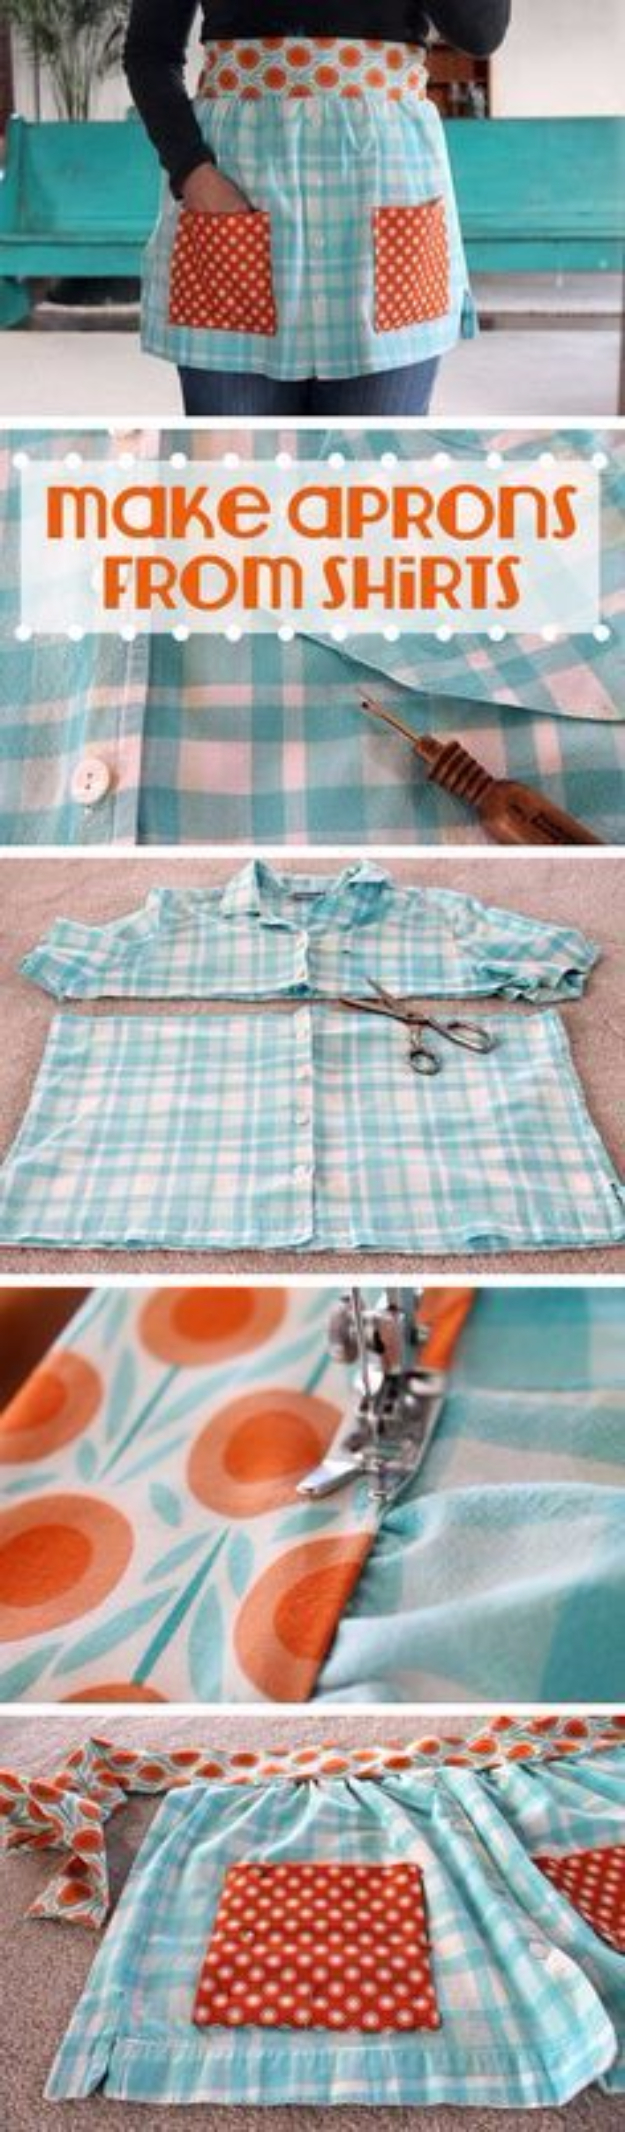 DIY Sewing Projects for the Kitchen - Aprons From Shirts - Easy Sewing Tutorials and Patterns for Towels, napkinds, aprons and cool Christmas gifts for friends and family - Rustic, Modern and Creative Home Decor Ideas #sewing #sewingprojects #sewingcrafts #kitchen